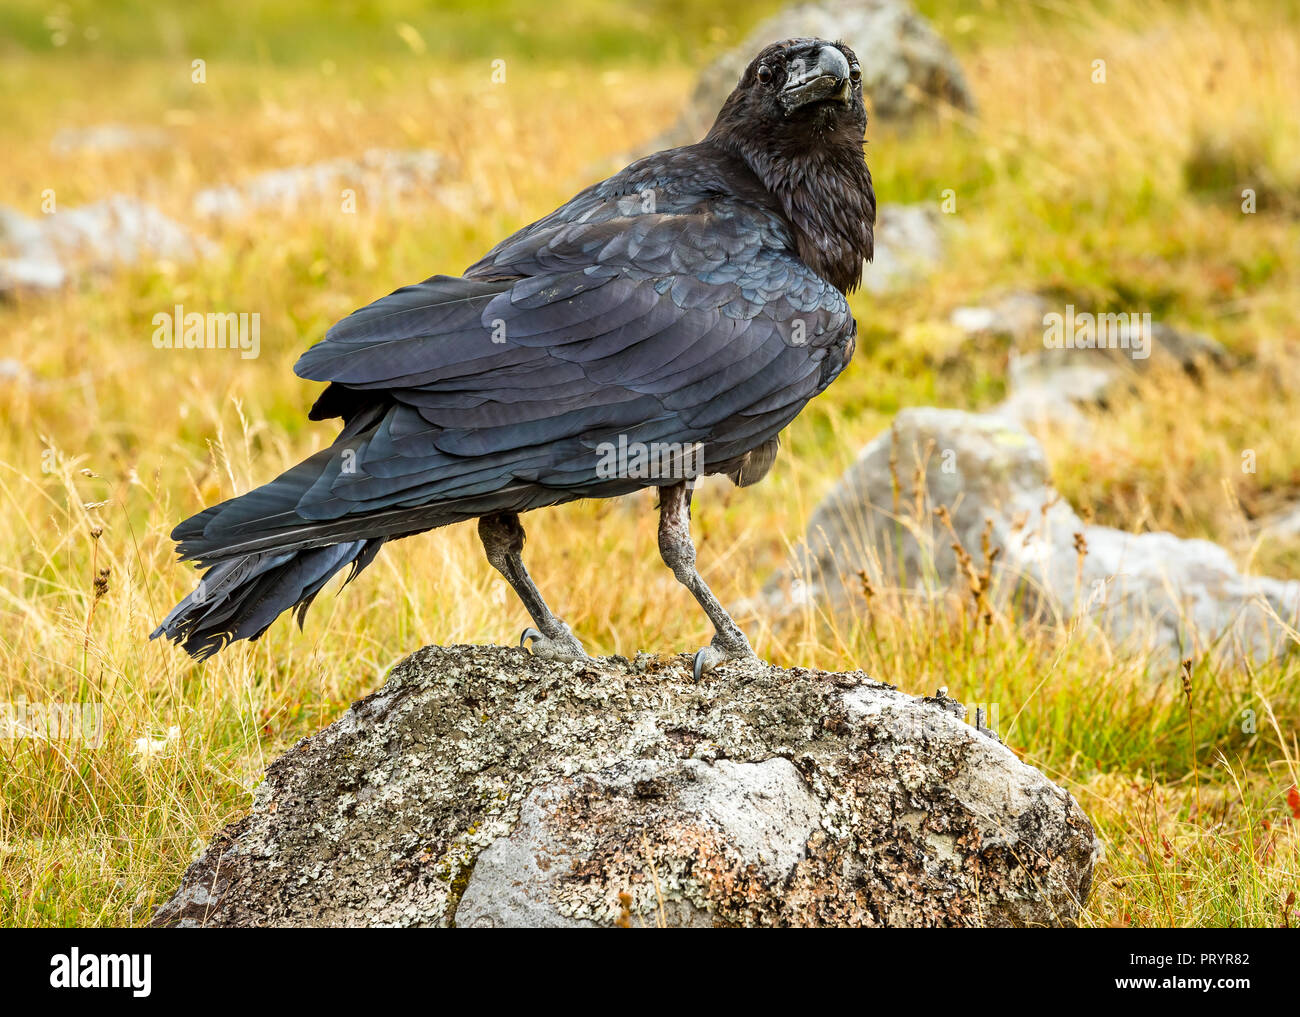 Raven, Common, Eurasian raven (Corvus corax) perched on lichen covered rock in the English Lake District. UK.  Horizontal. - Stock Image